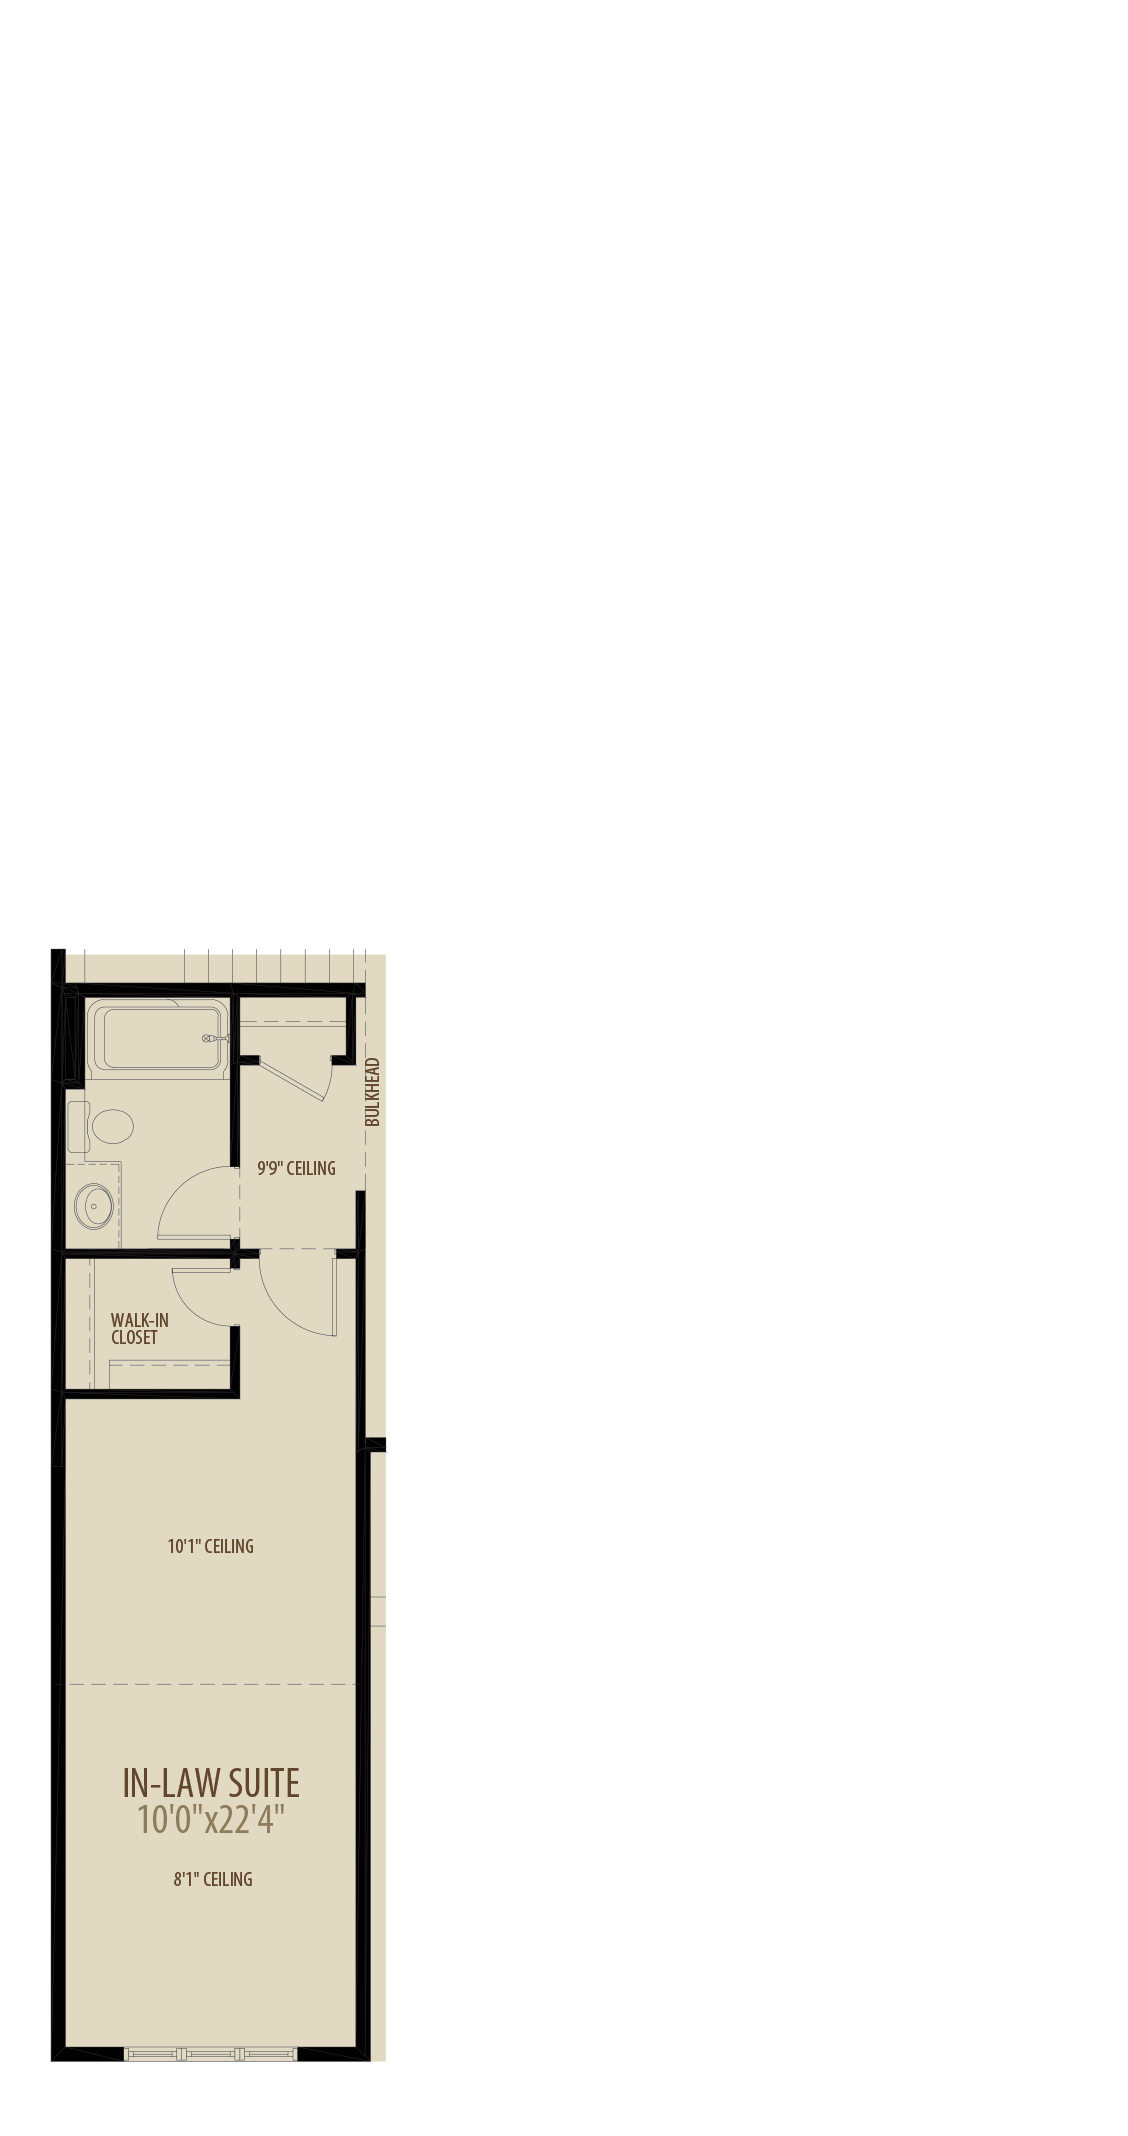 Deluxe In Law Suite Adds 208 sq ft